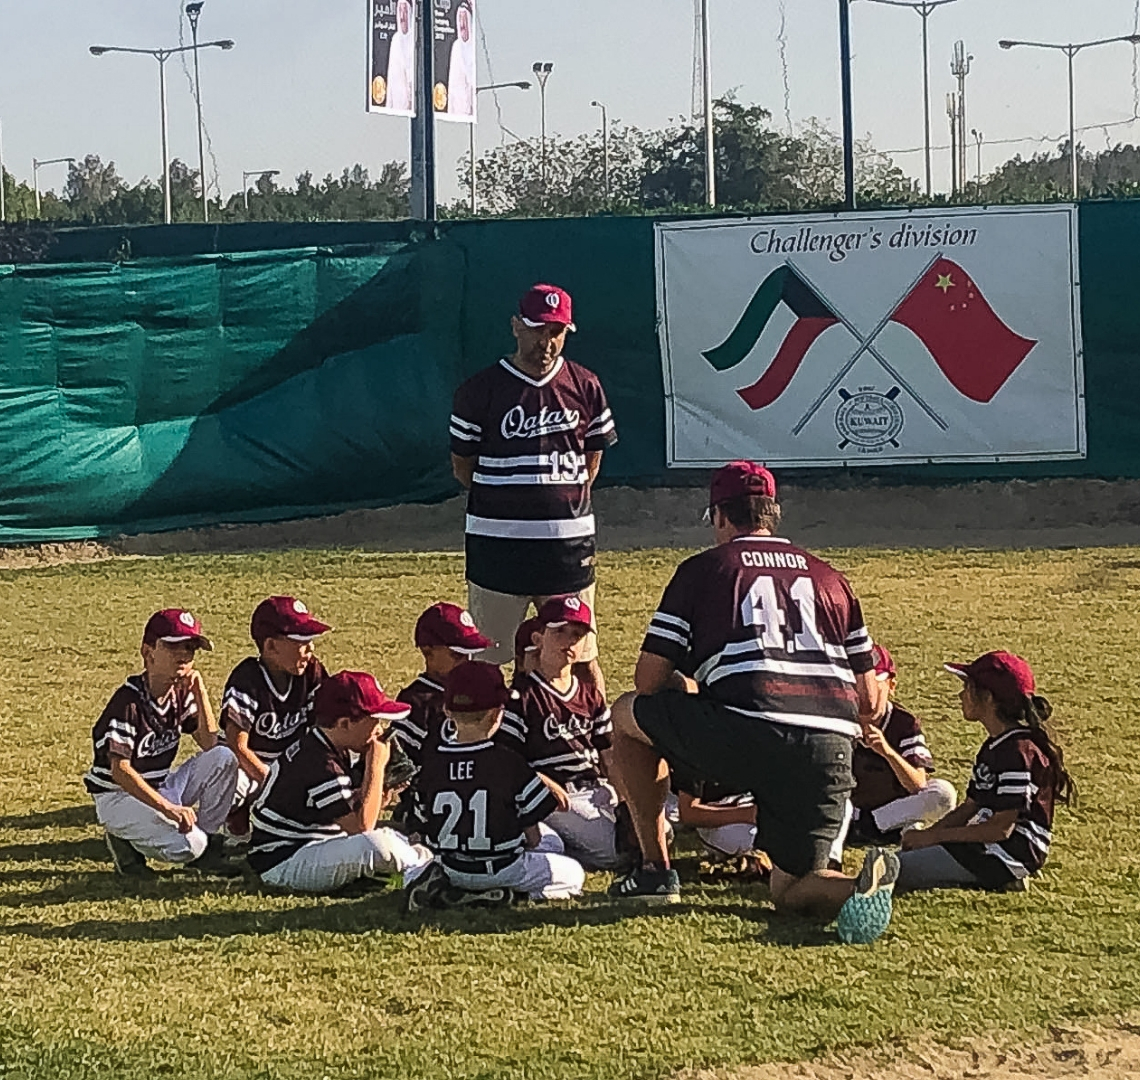 Baseball Mom - Thing 1 with his teammates. They are all sat on the grass listening to their coach.